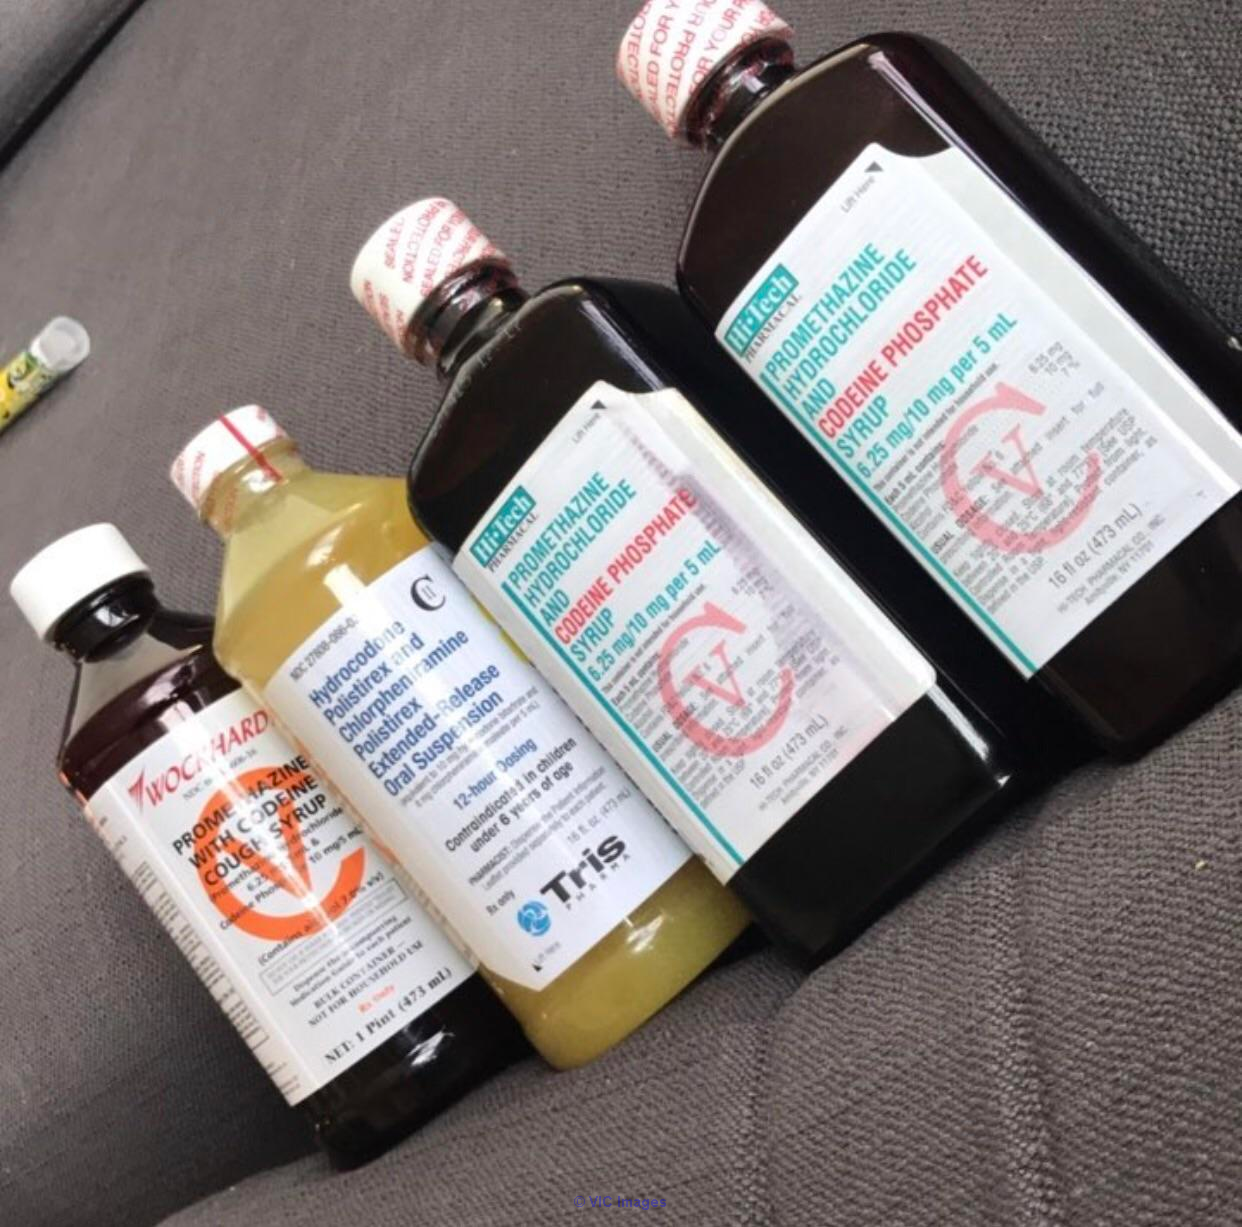 Buy Hi-tech Promethazine Codeine, Wockhardt Cough Syrup, Qualitest